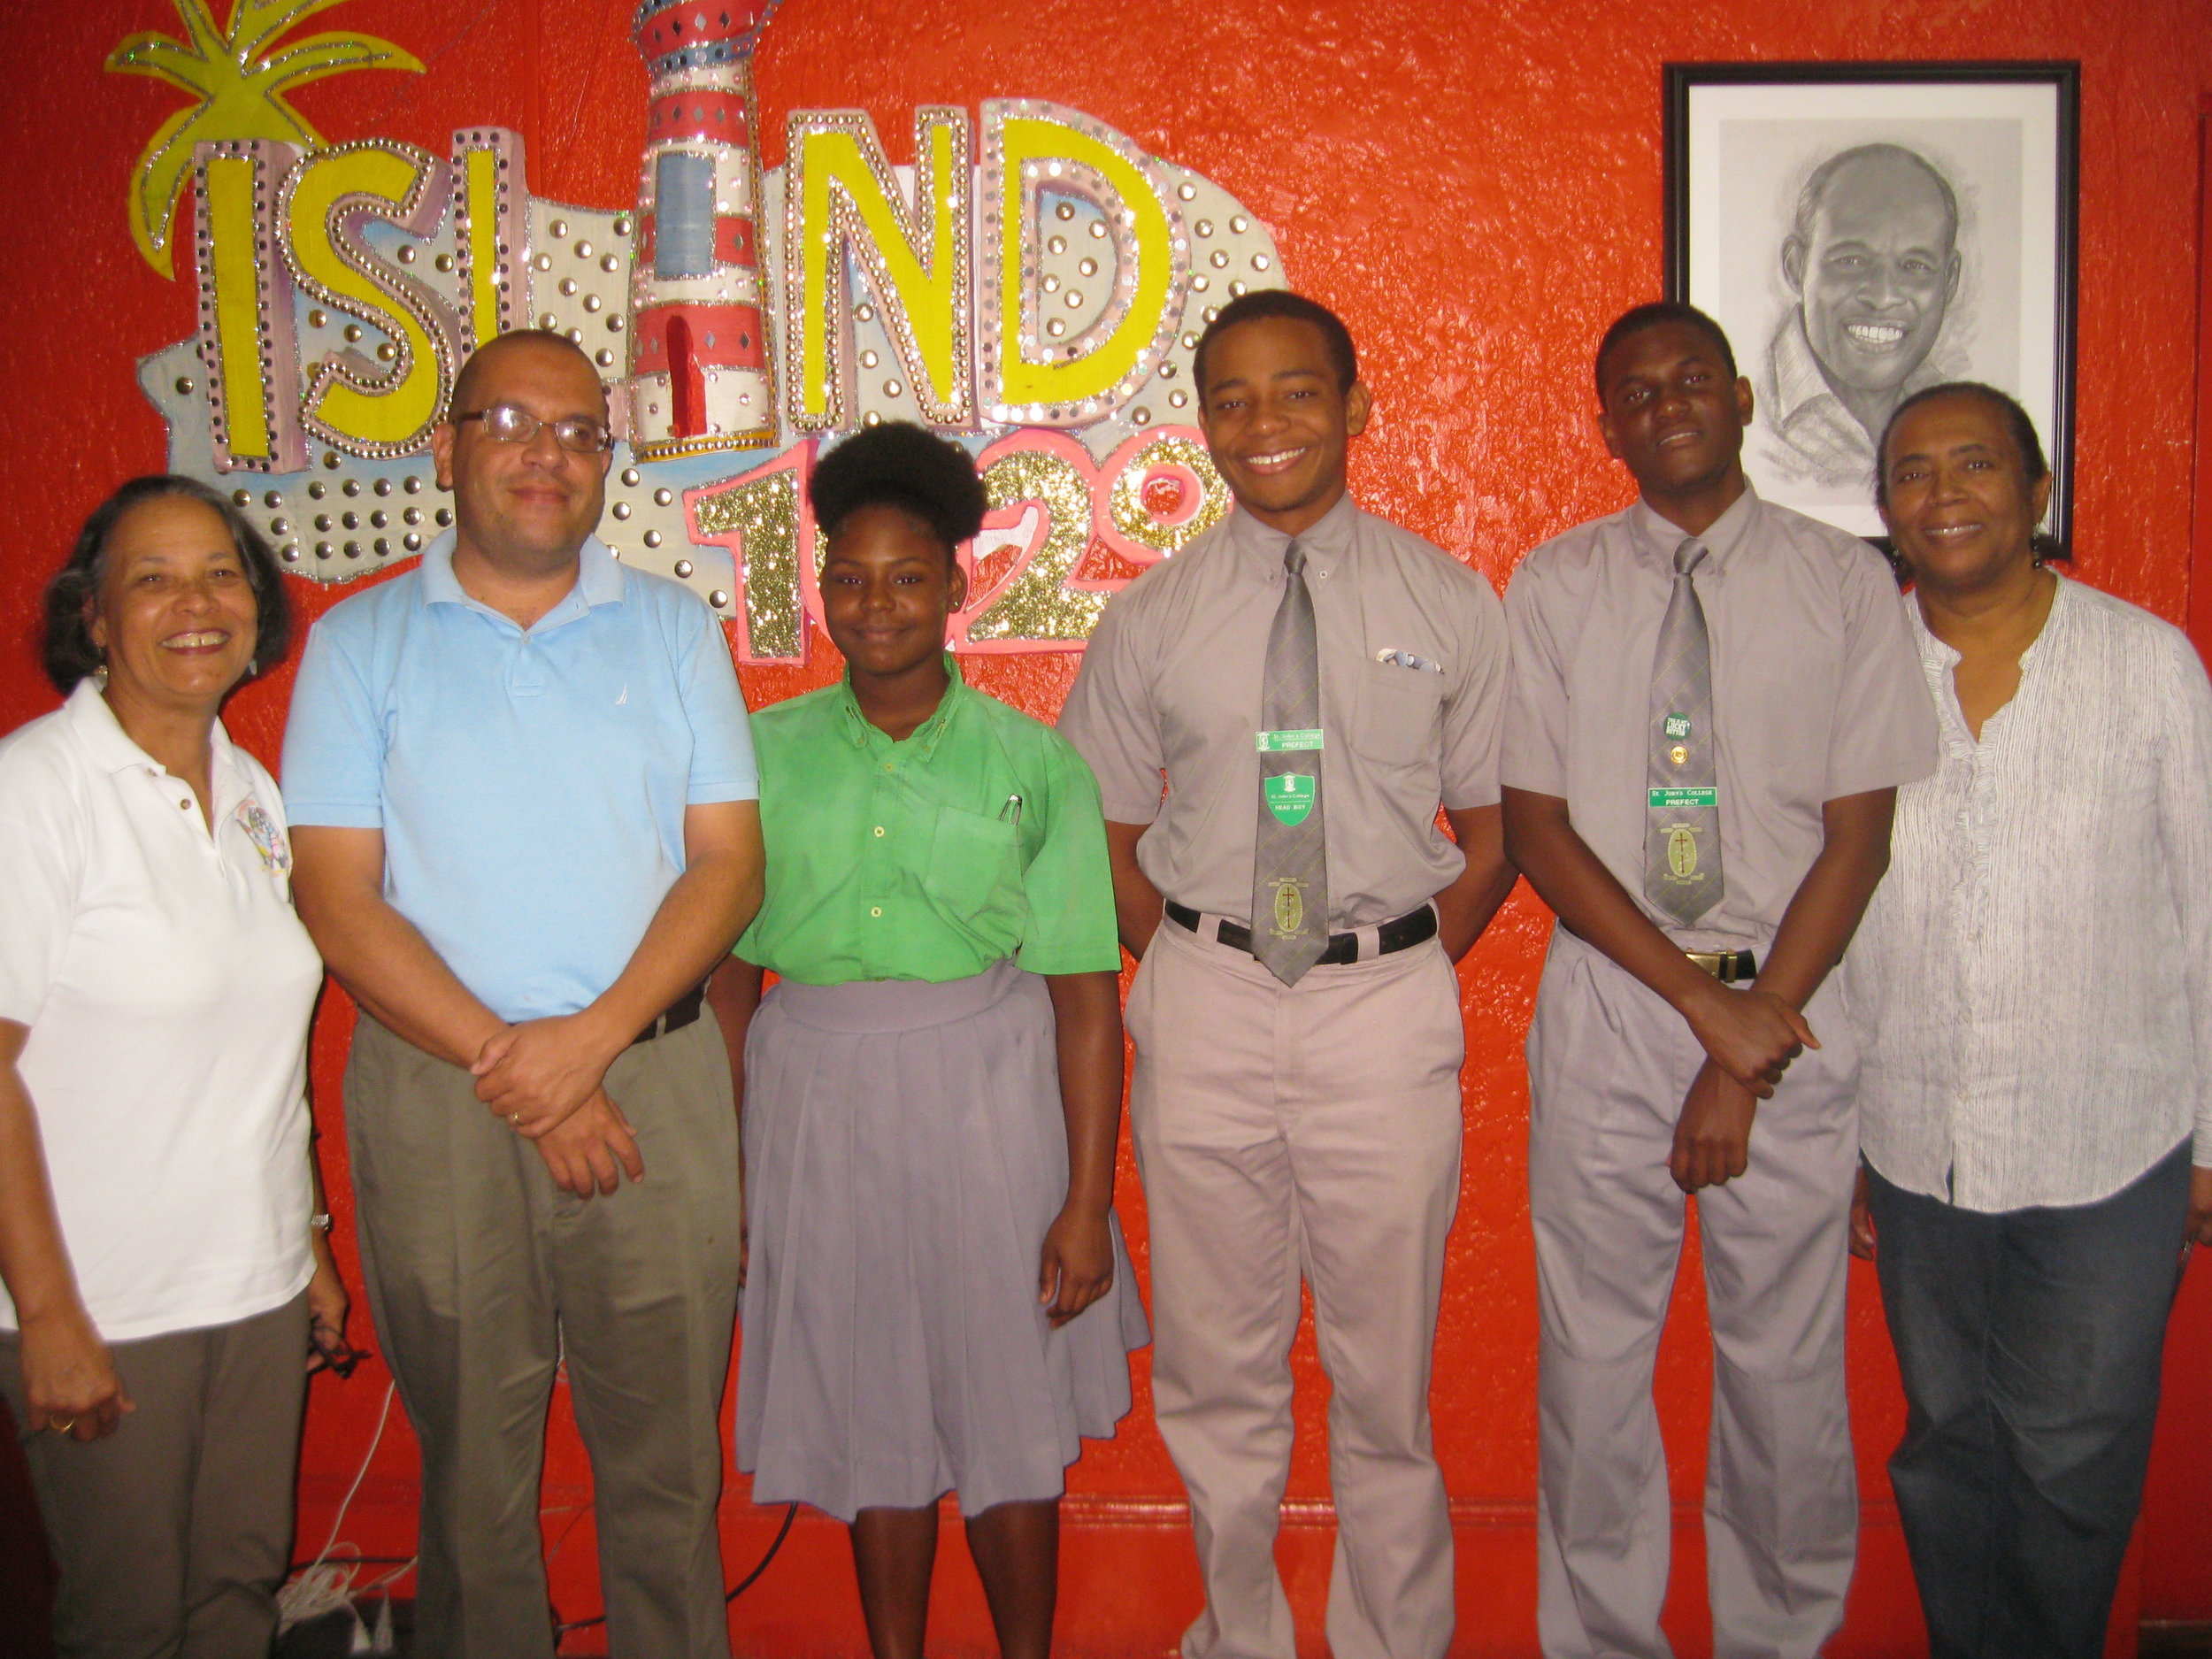 The radio studio photo shows (left to right): Pam, Father Turnquest, 11th Grade student Dwayna Archer, Head Boy and Team Leader Justyn Sweeting, 12th Grade student Richard Hanna and Patti.